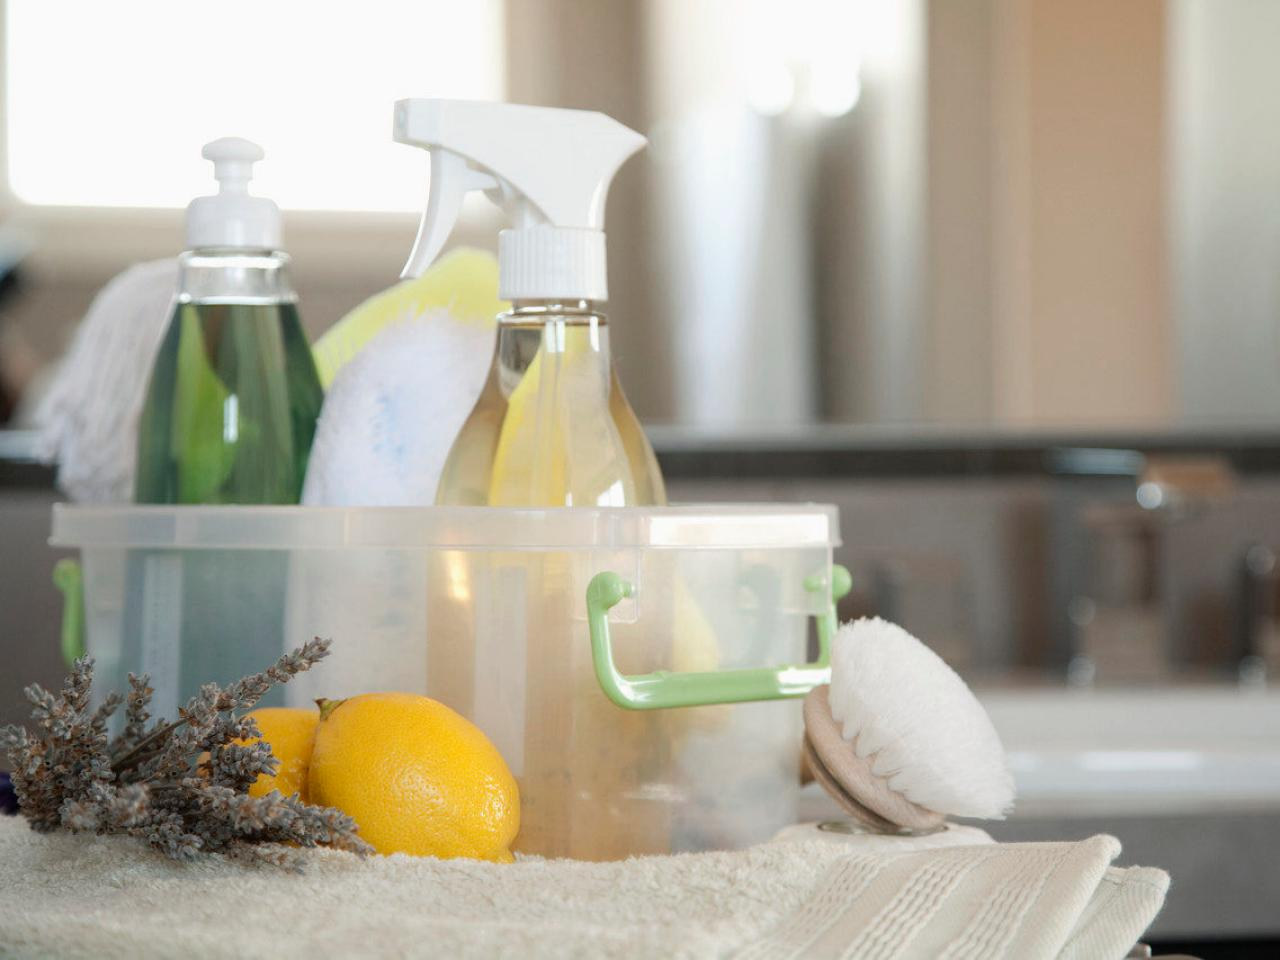 Corbis-42-22231610_household-cleaning-supplies-lemons_s4x3.jpg.rend.hgtvcom.1280.960